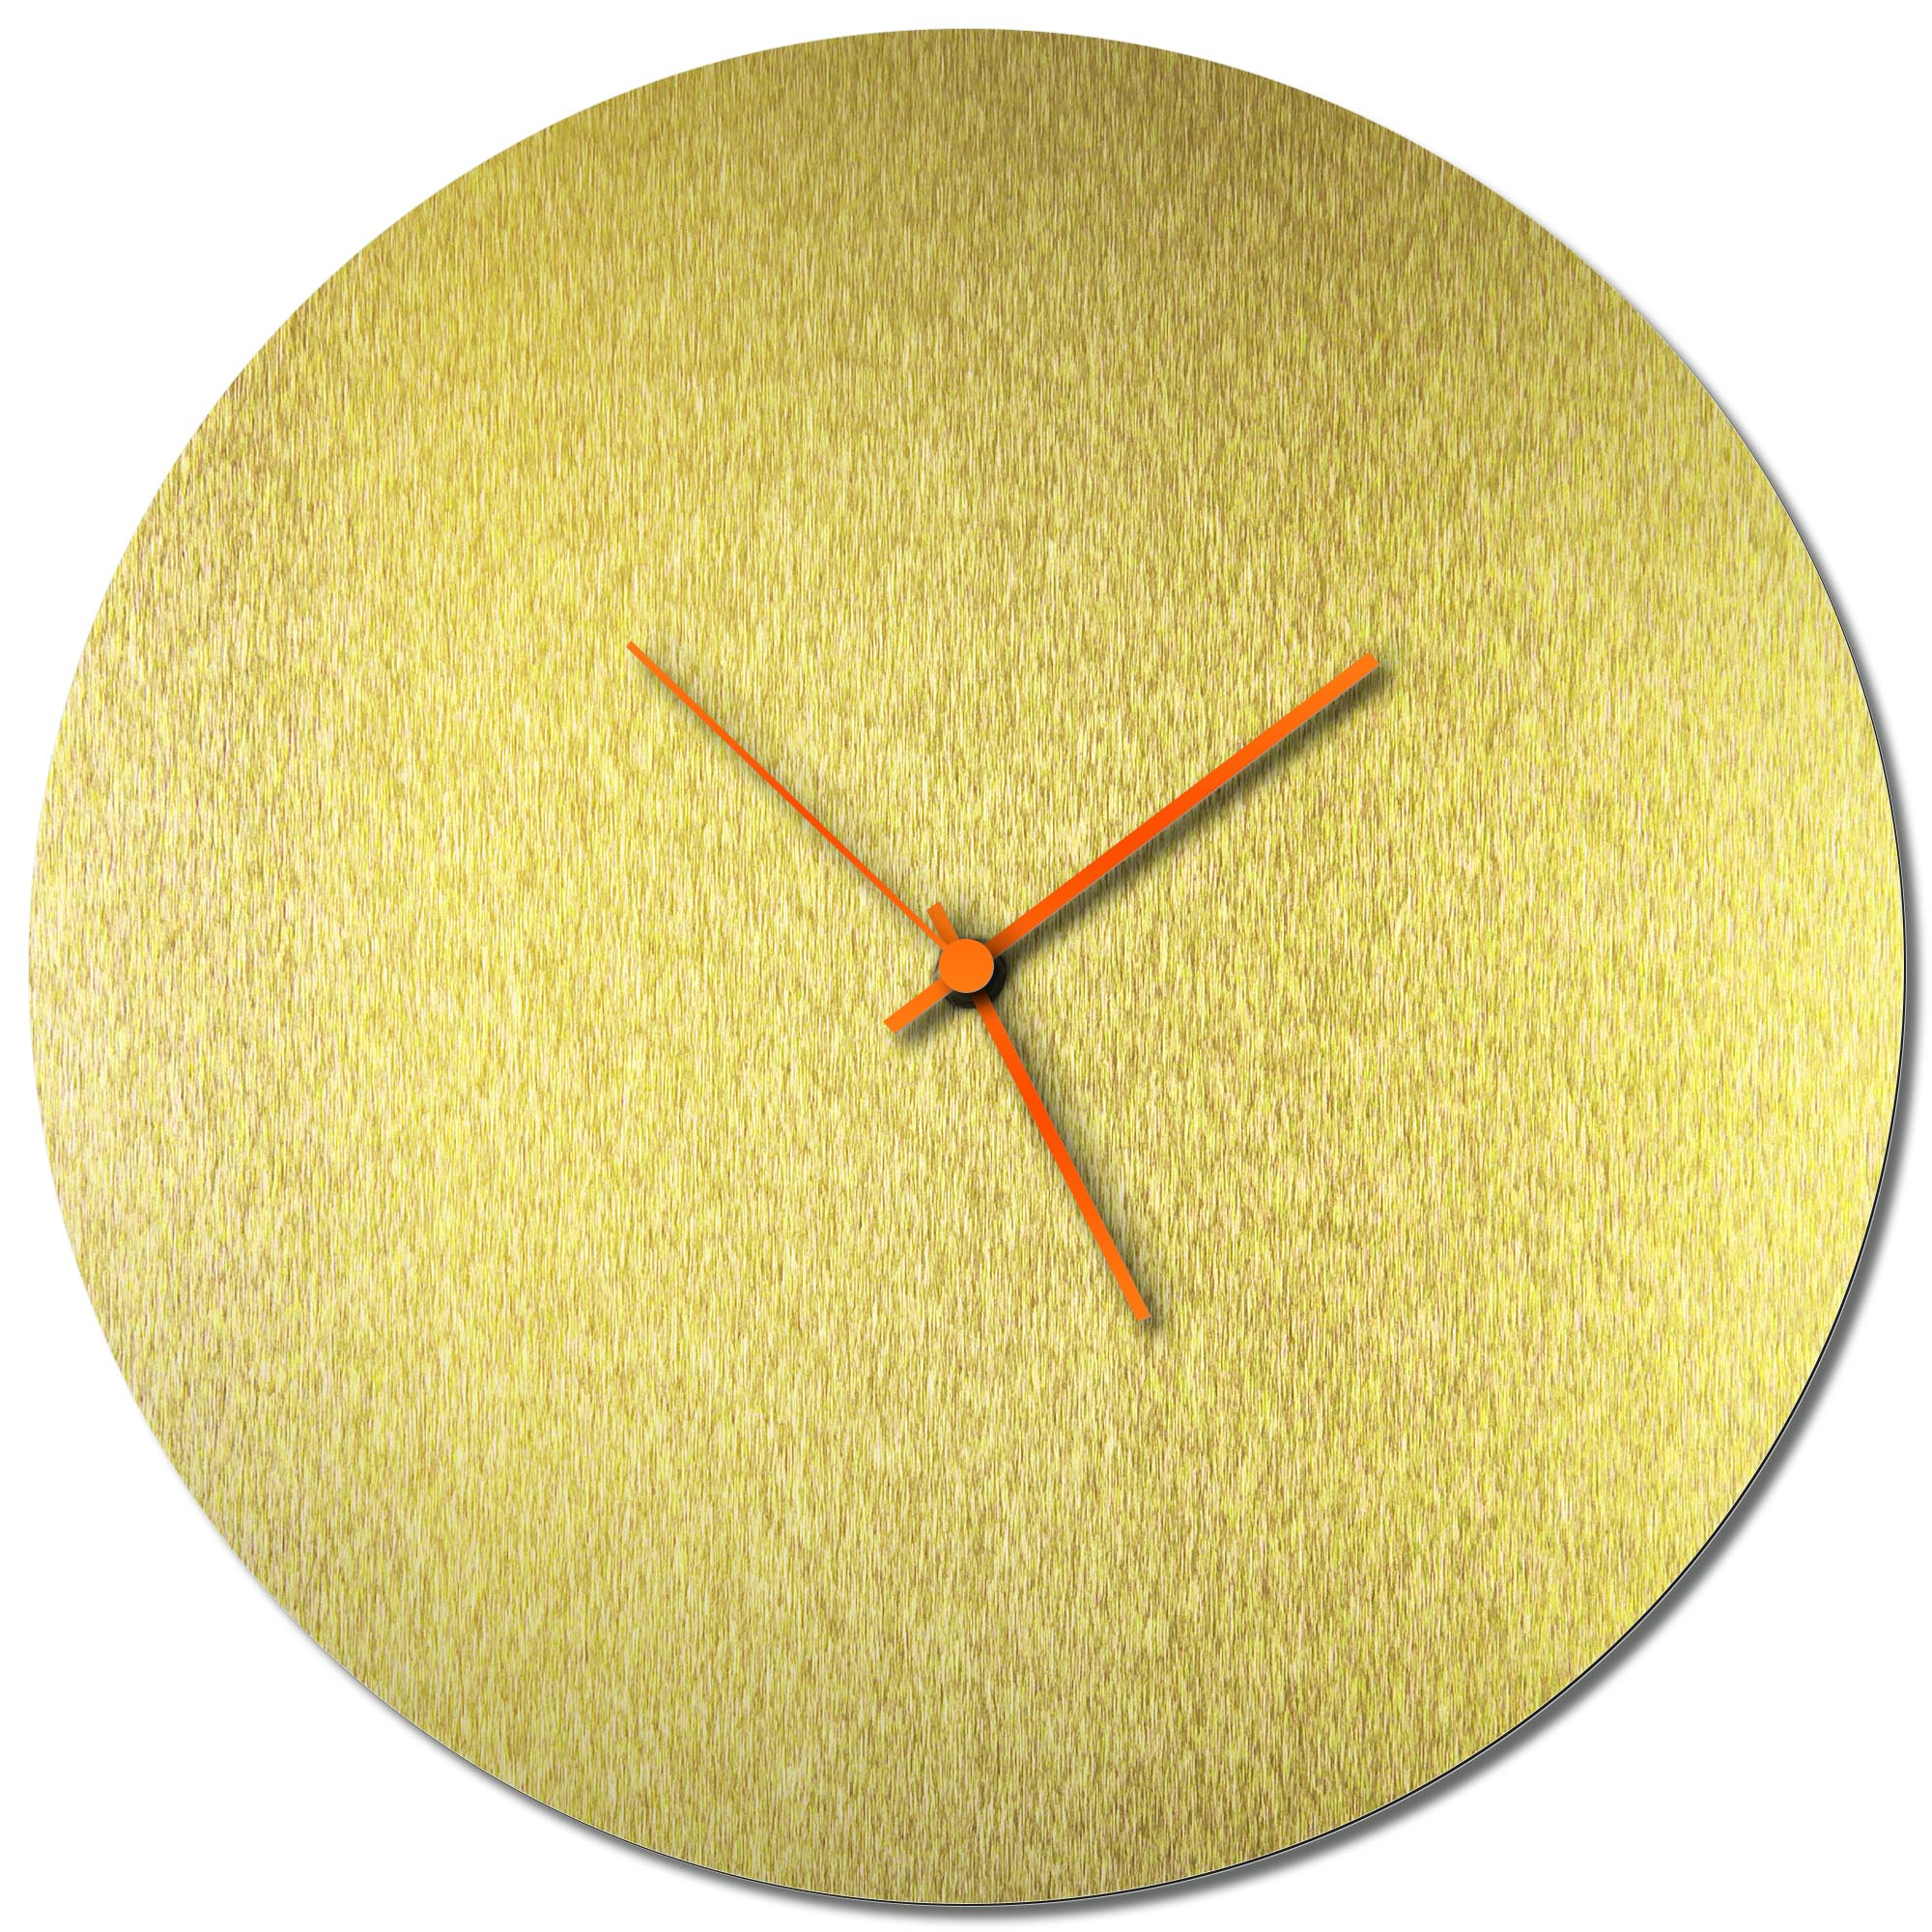 Adam Schwoeppe 'Goldsmith Circle Clock Large Orange' Midcentury Modern Style Wall Clock